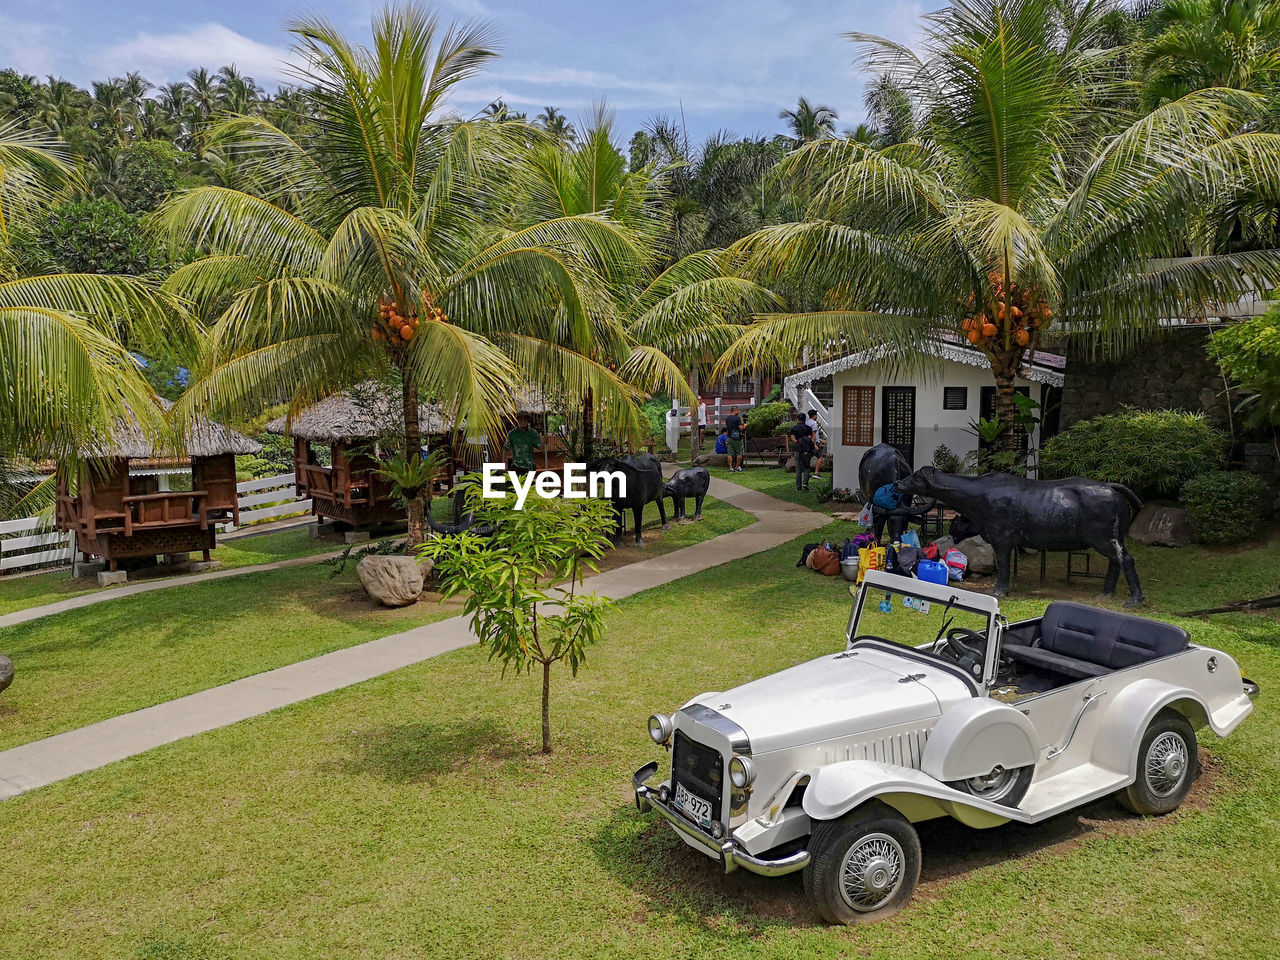 palm tree, plant, tree, tropical climate, mode of transportation, transportation, grass, nature, land vehicle, day, motor vehicle, green color, car, leisure activity, incidental people, land, growth, sunlight, real people, golf cart